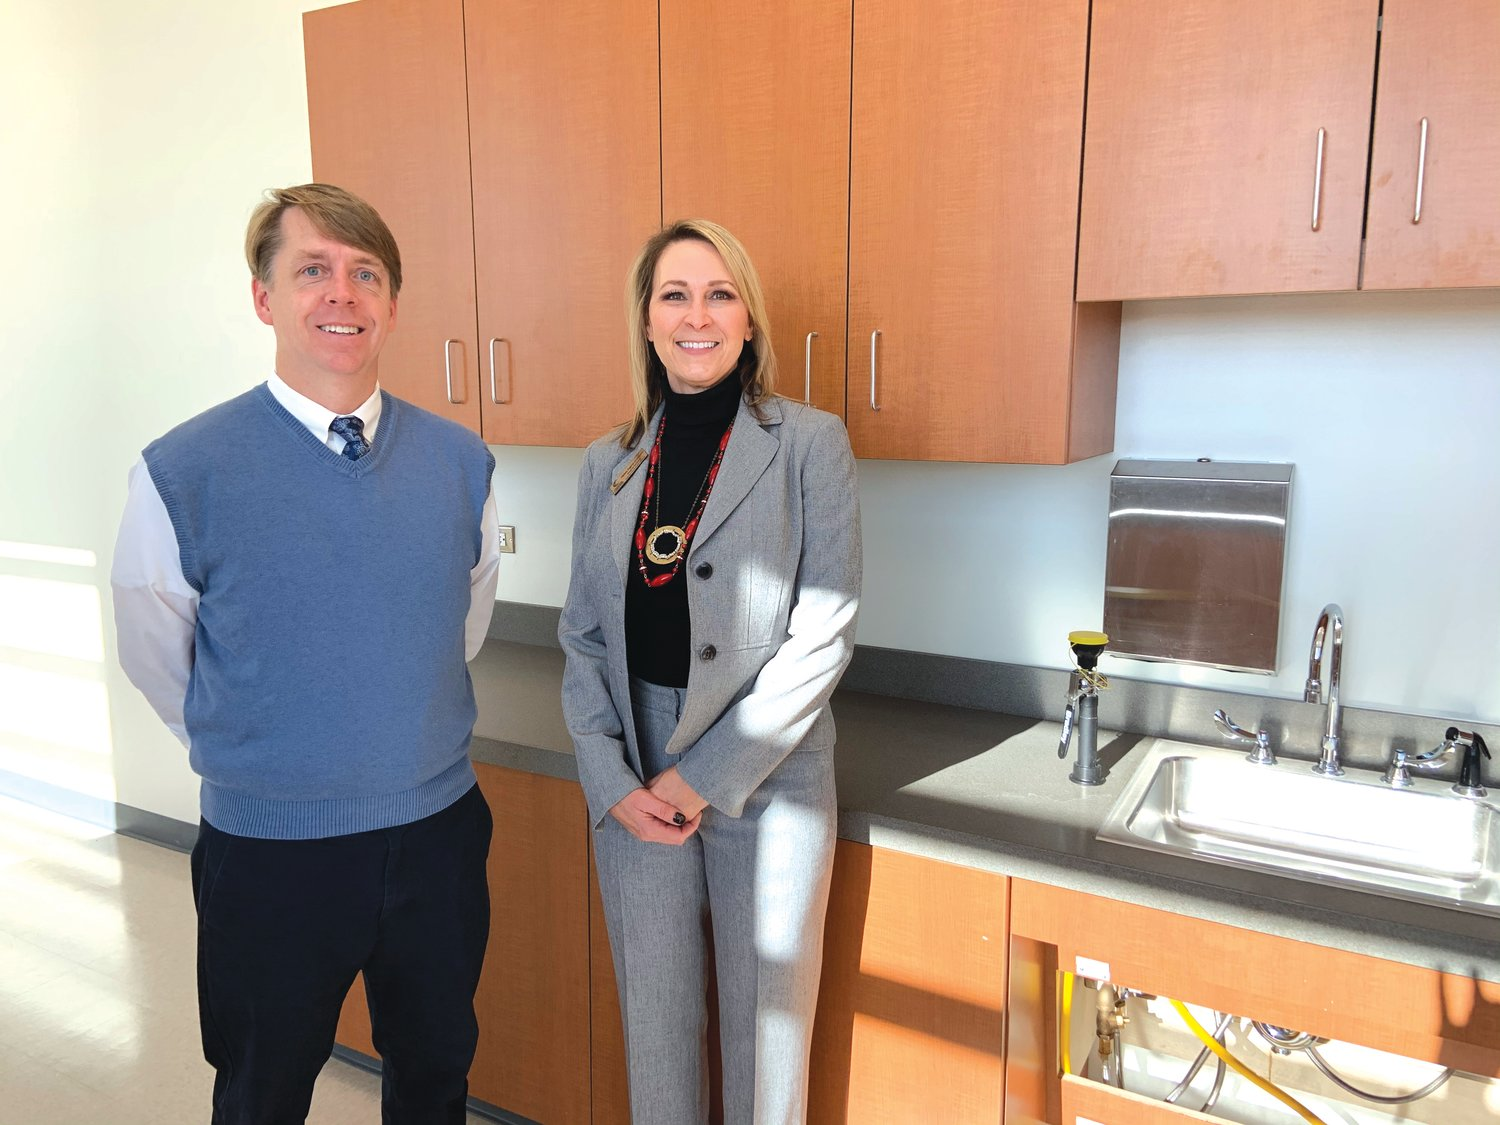 CCCC's Chatham Provost Mark Hall, left, and Health Sciences Building Site Coordinator Melissa Fogarty stand in the laboratory where medical assisting students will practice lab work.